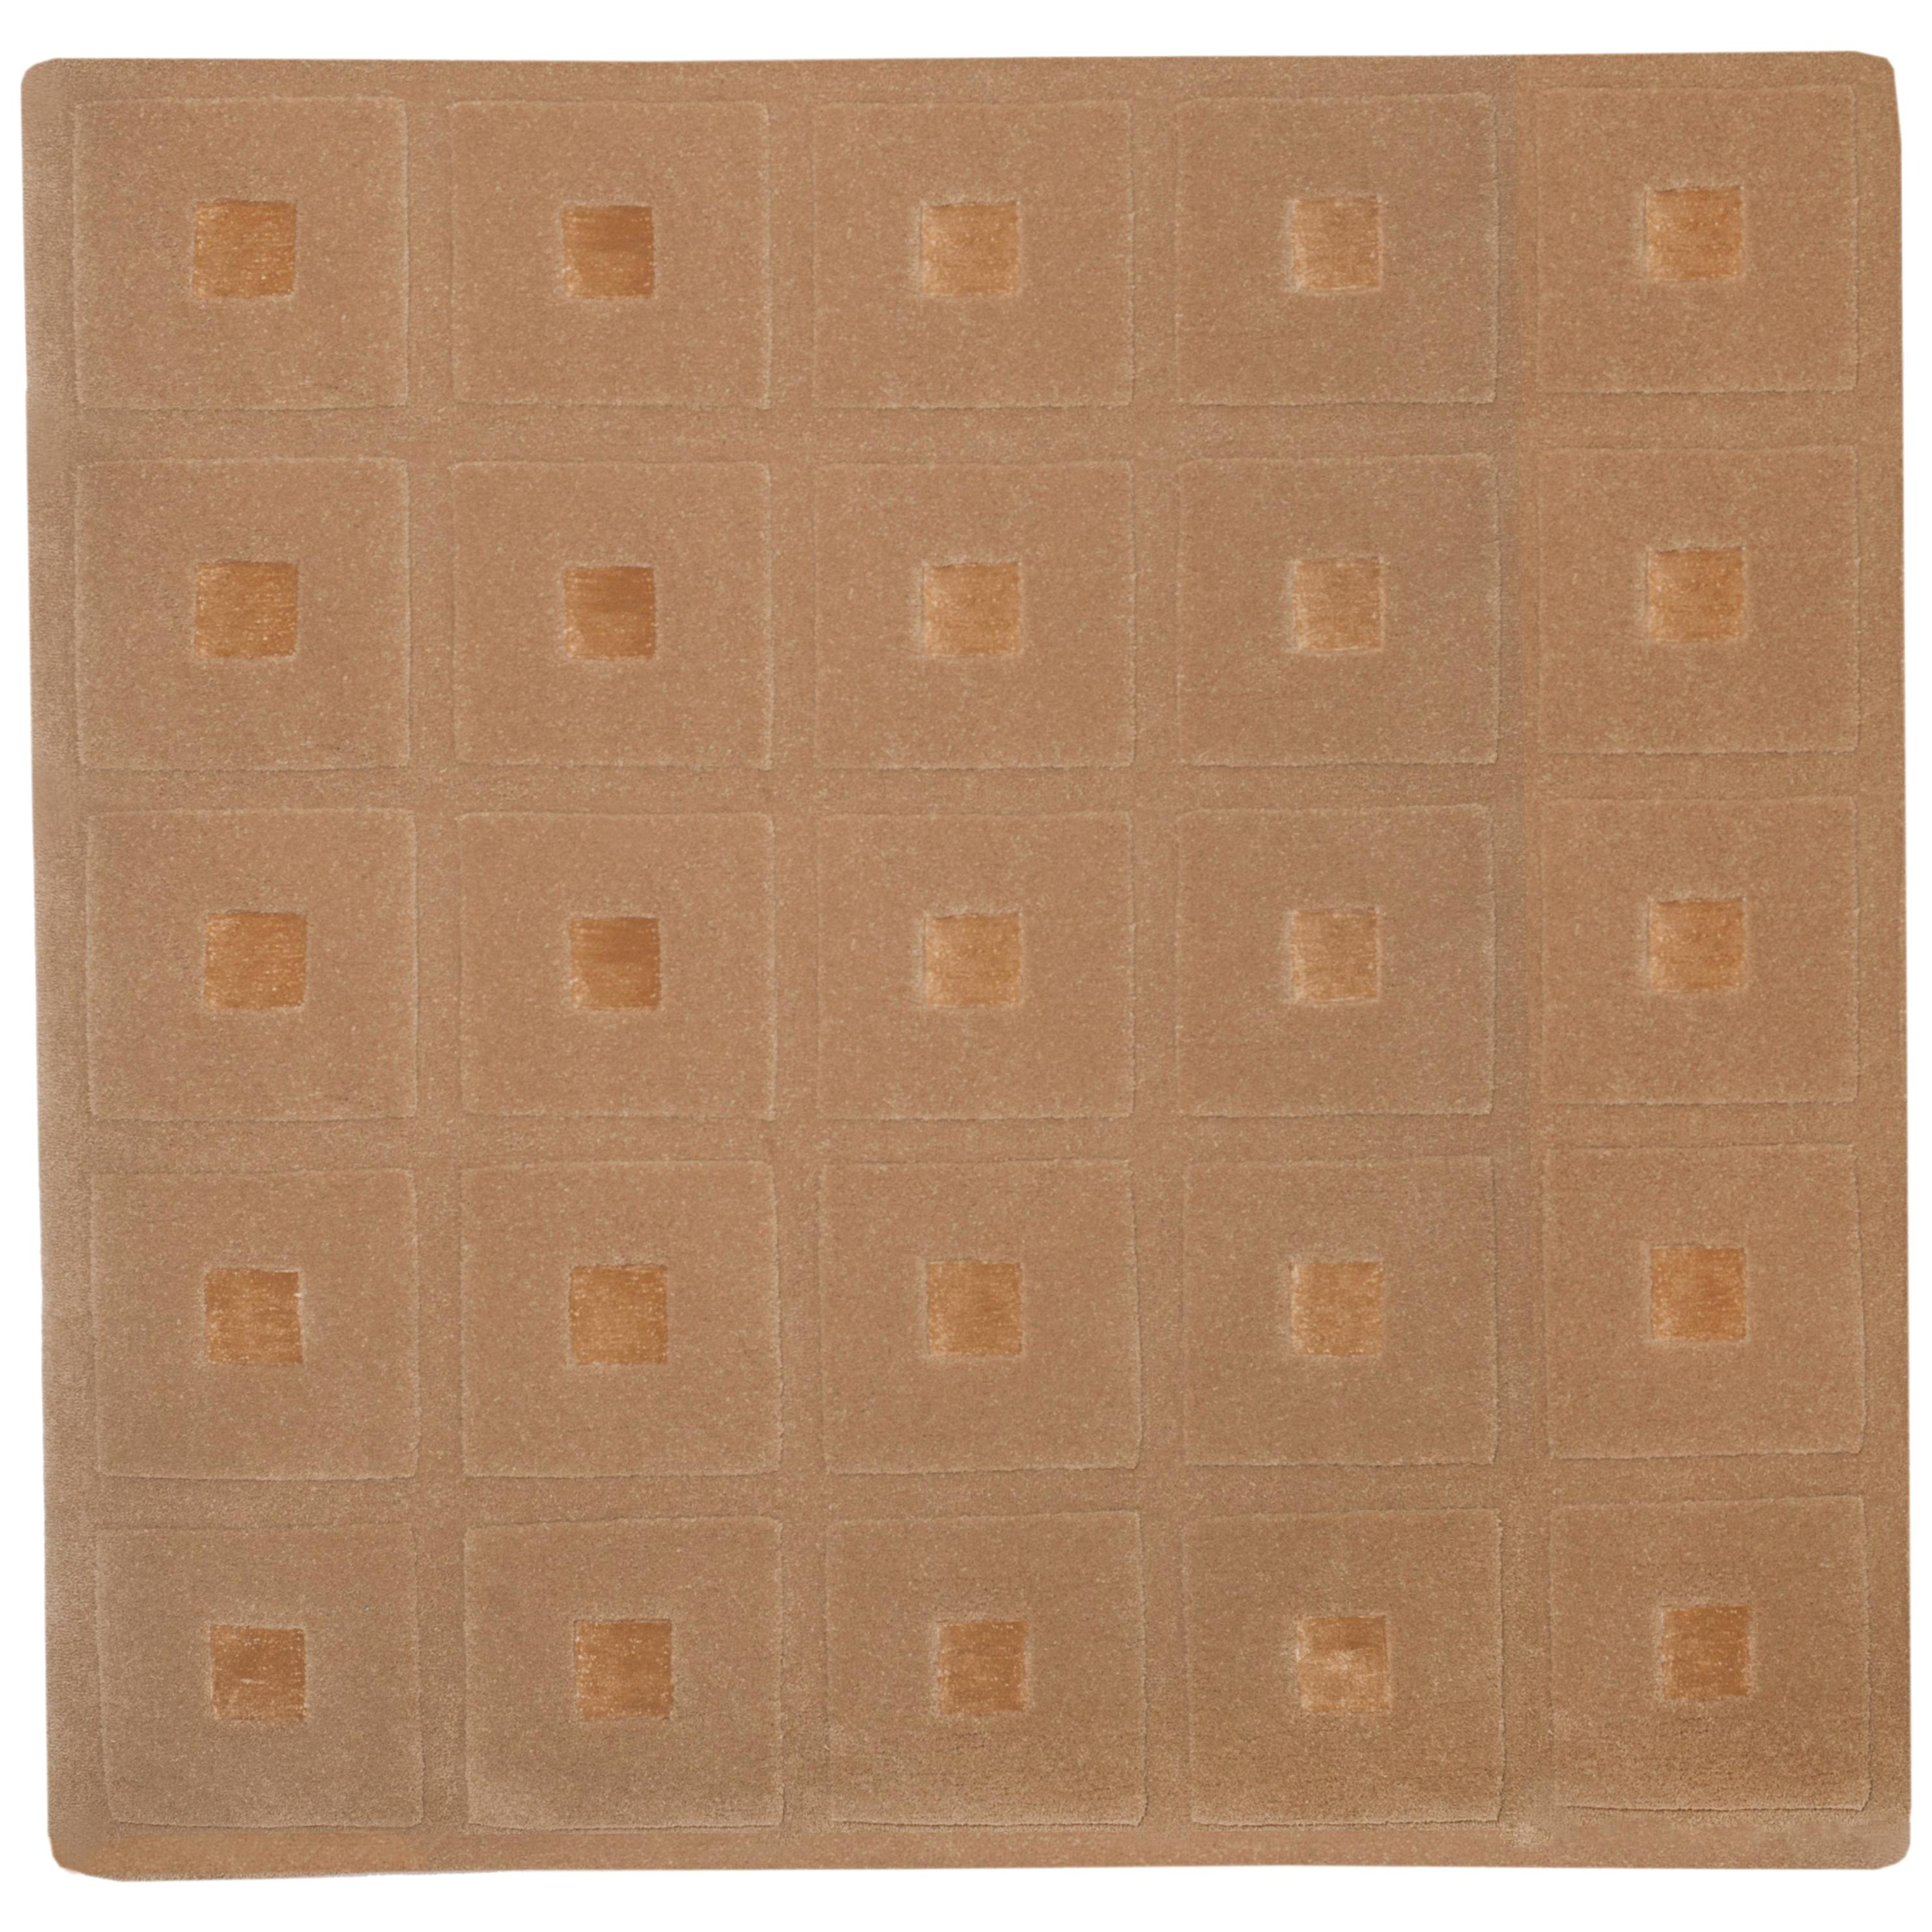 21st Century Hand Tufted Wool and Silk Rug Carpet Made in Spain Checkers Brown